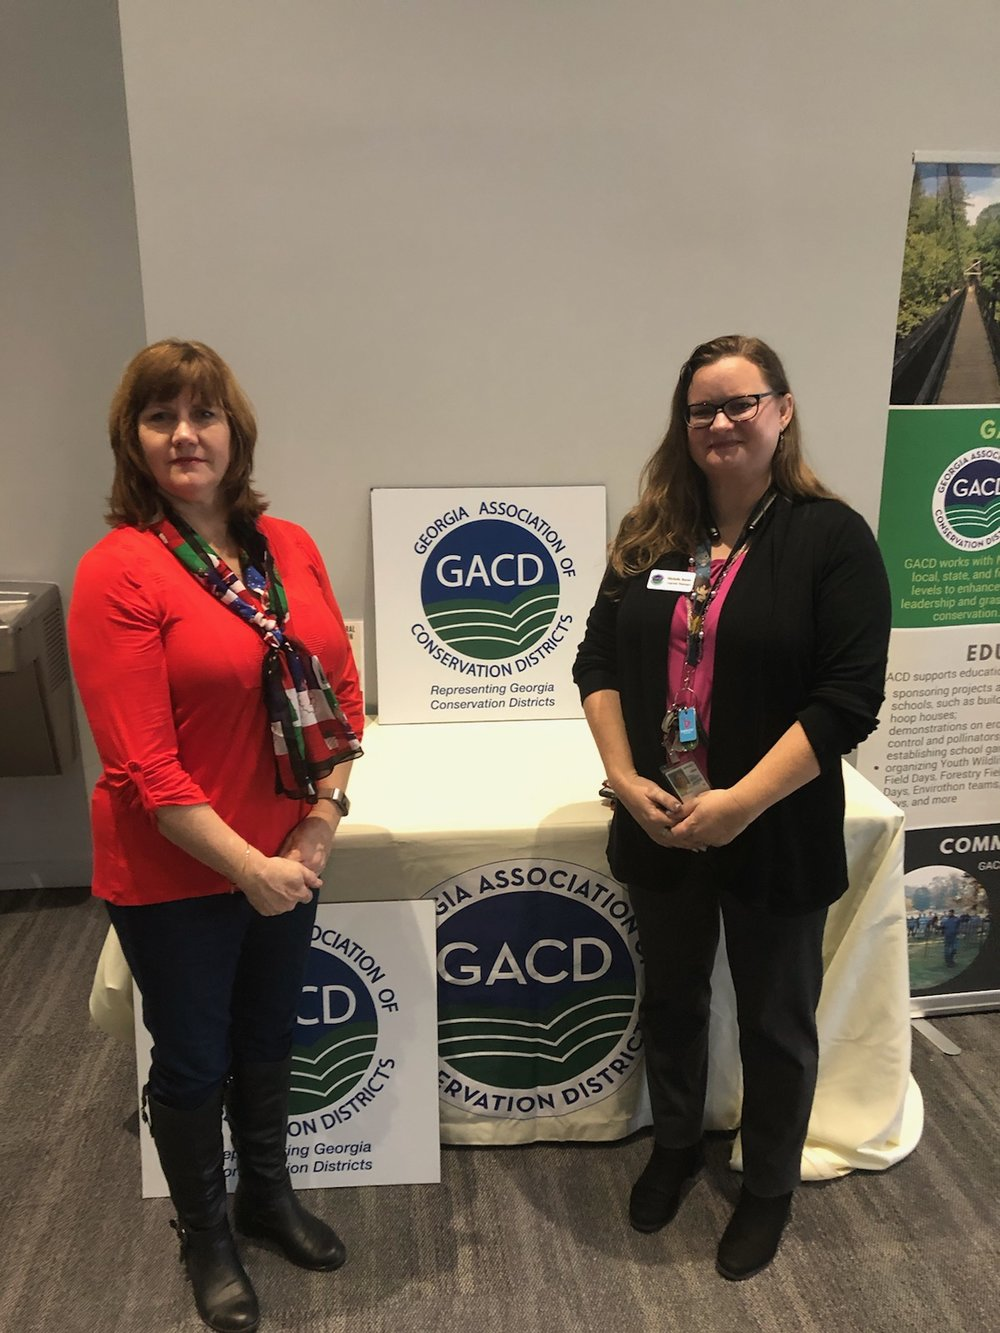 Cindy Drew, GA Farm Bureau of Dougherty County & Michelle Boone, GACD Program Manager